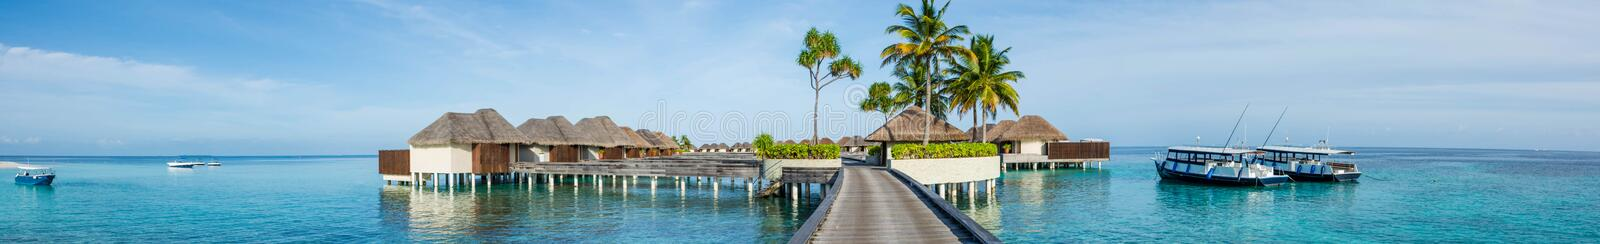 Beautiful tropical beach panorama of bungalos with bridge near the ocean with palms trees and boats at Maldives royalty free stock photography